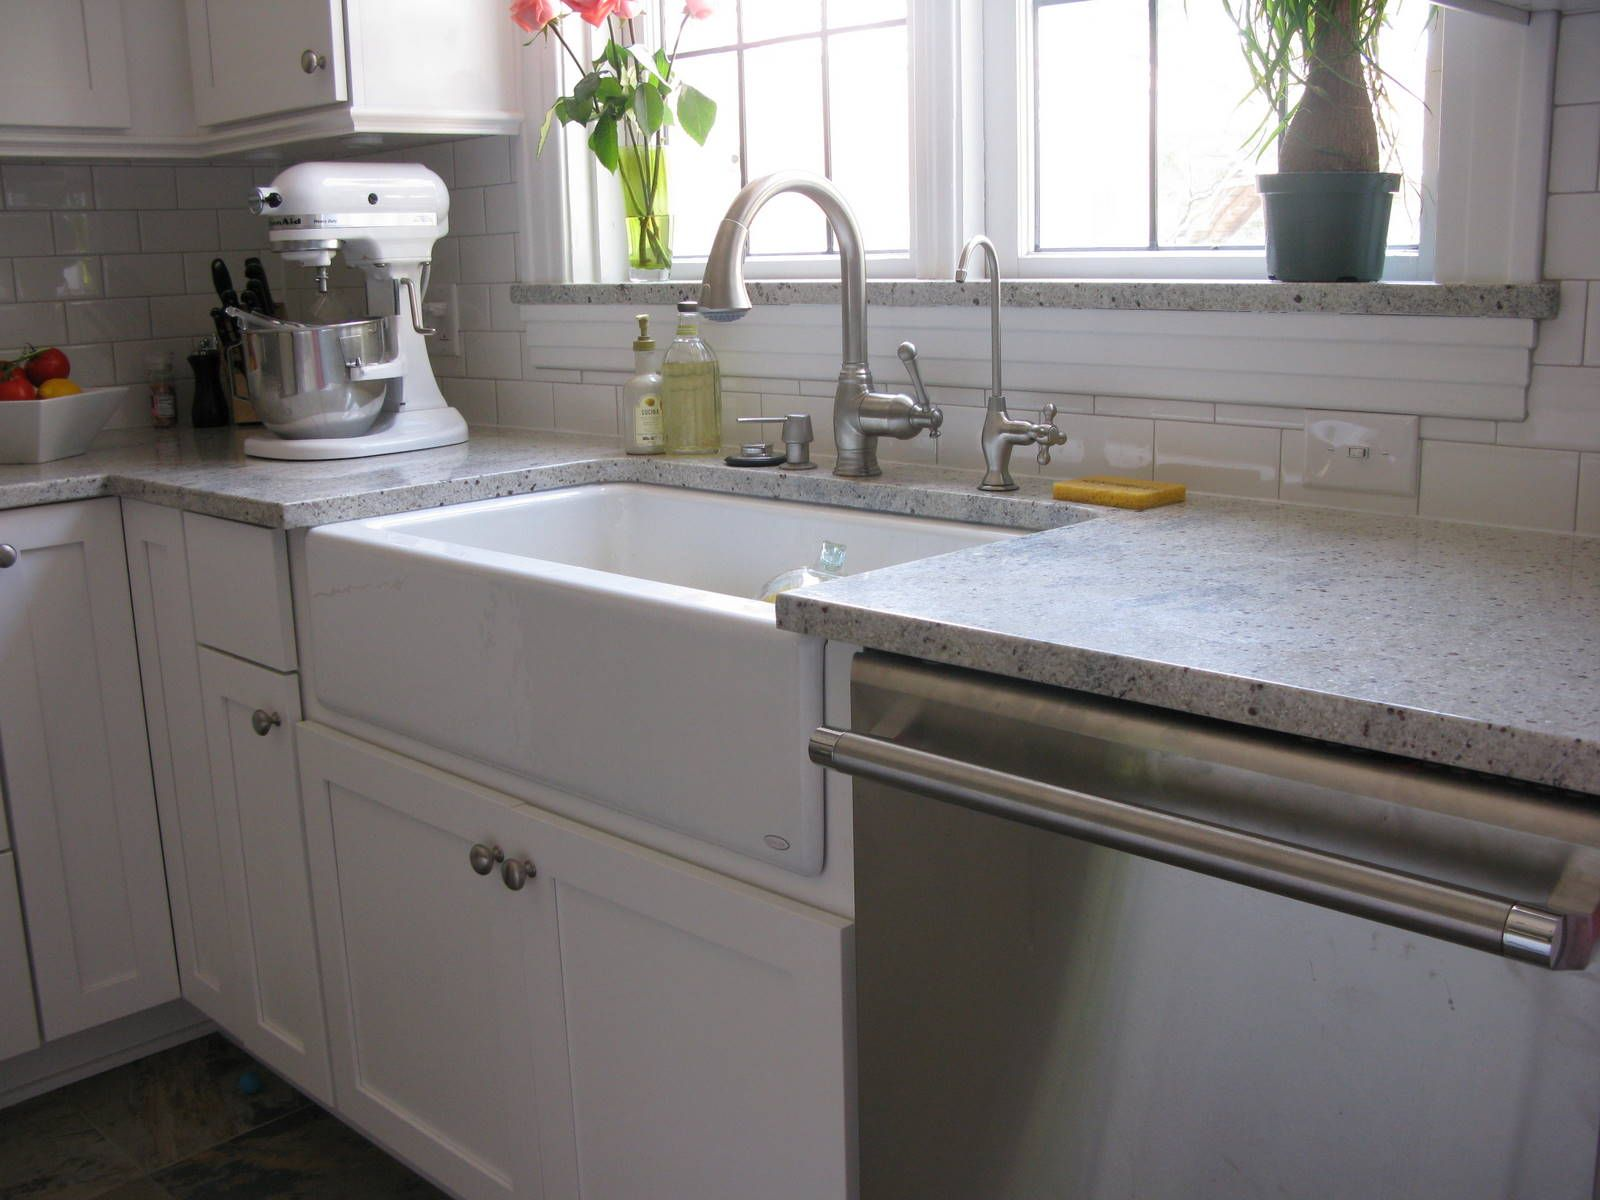 kitchens - White Kitchen Sink